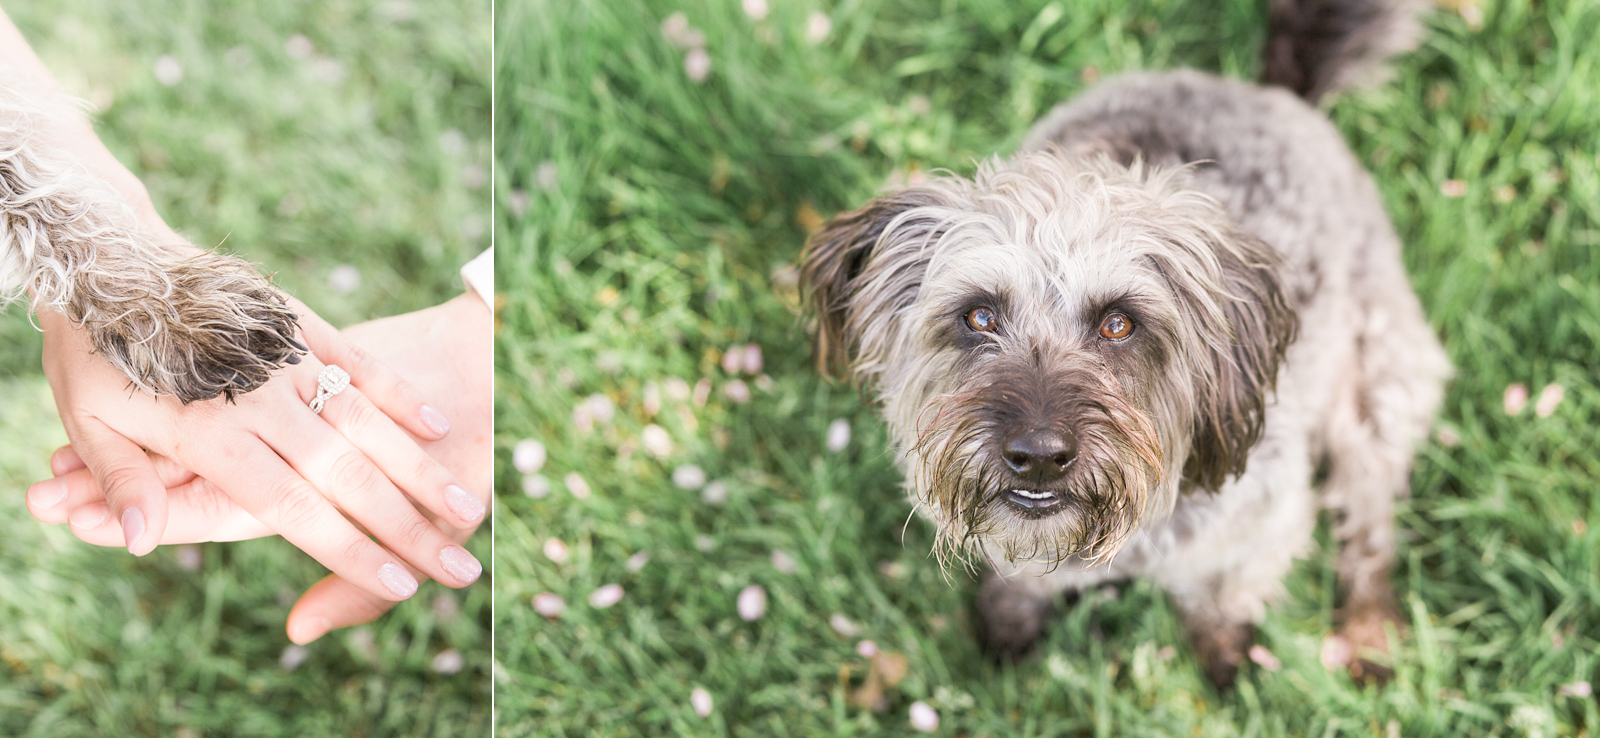 Engagement Shoot Spring Blossom Fine Art Wedding Photography sweet hand and paw shot with dog